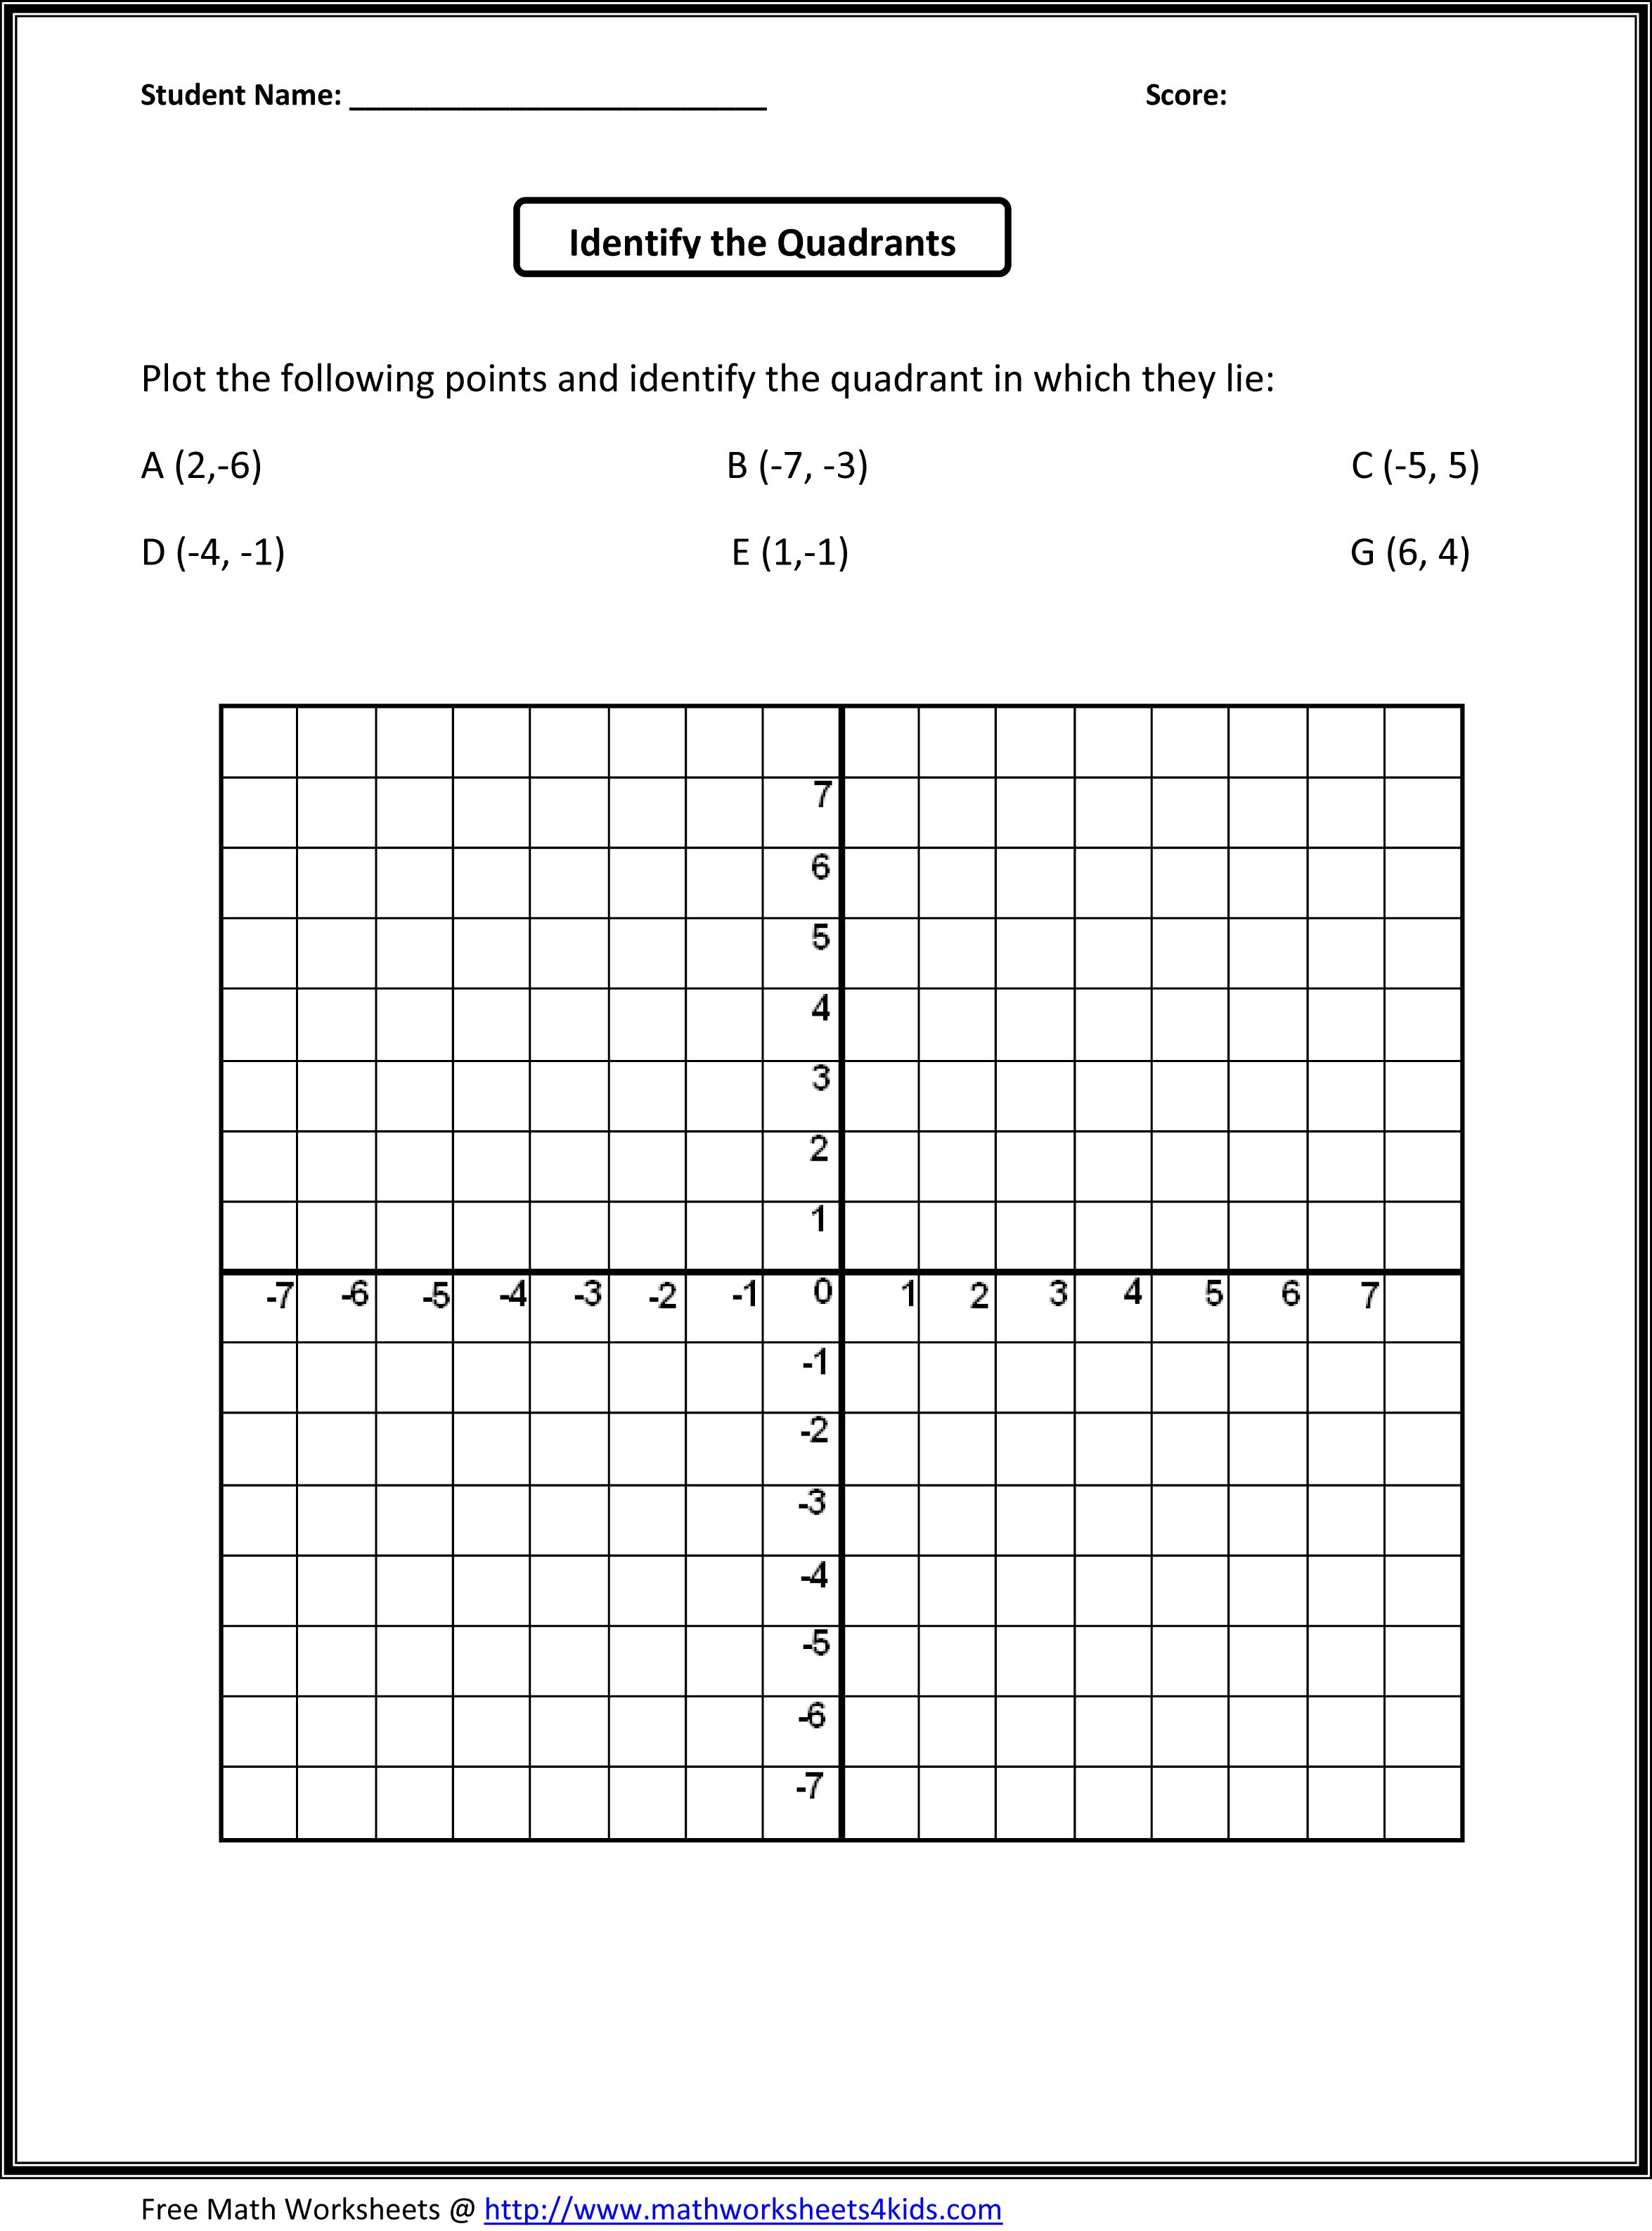 5th Grade Math Worksheet School Pinterest Math